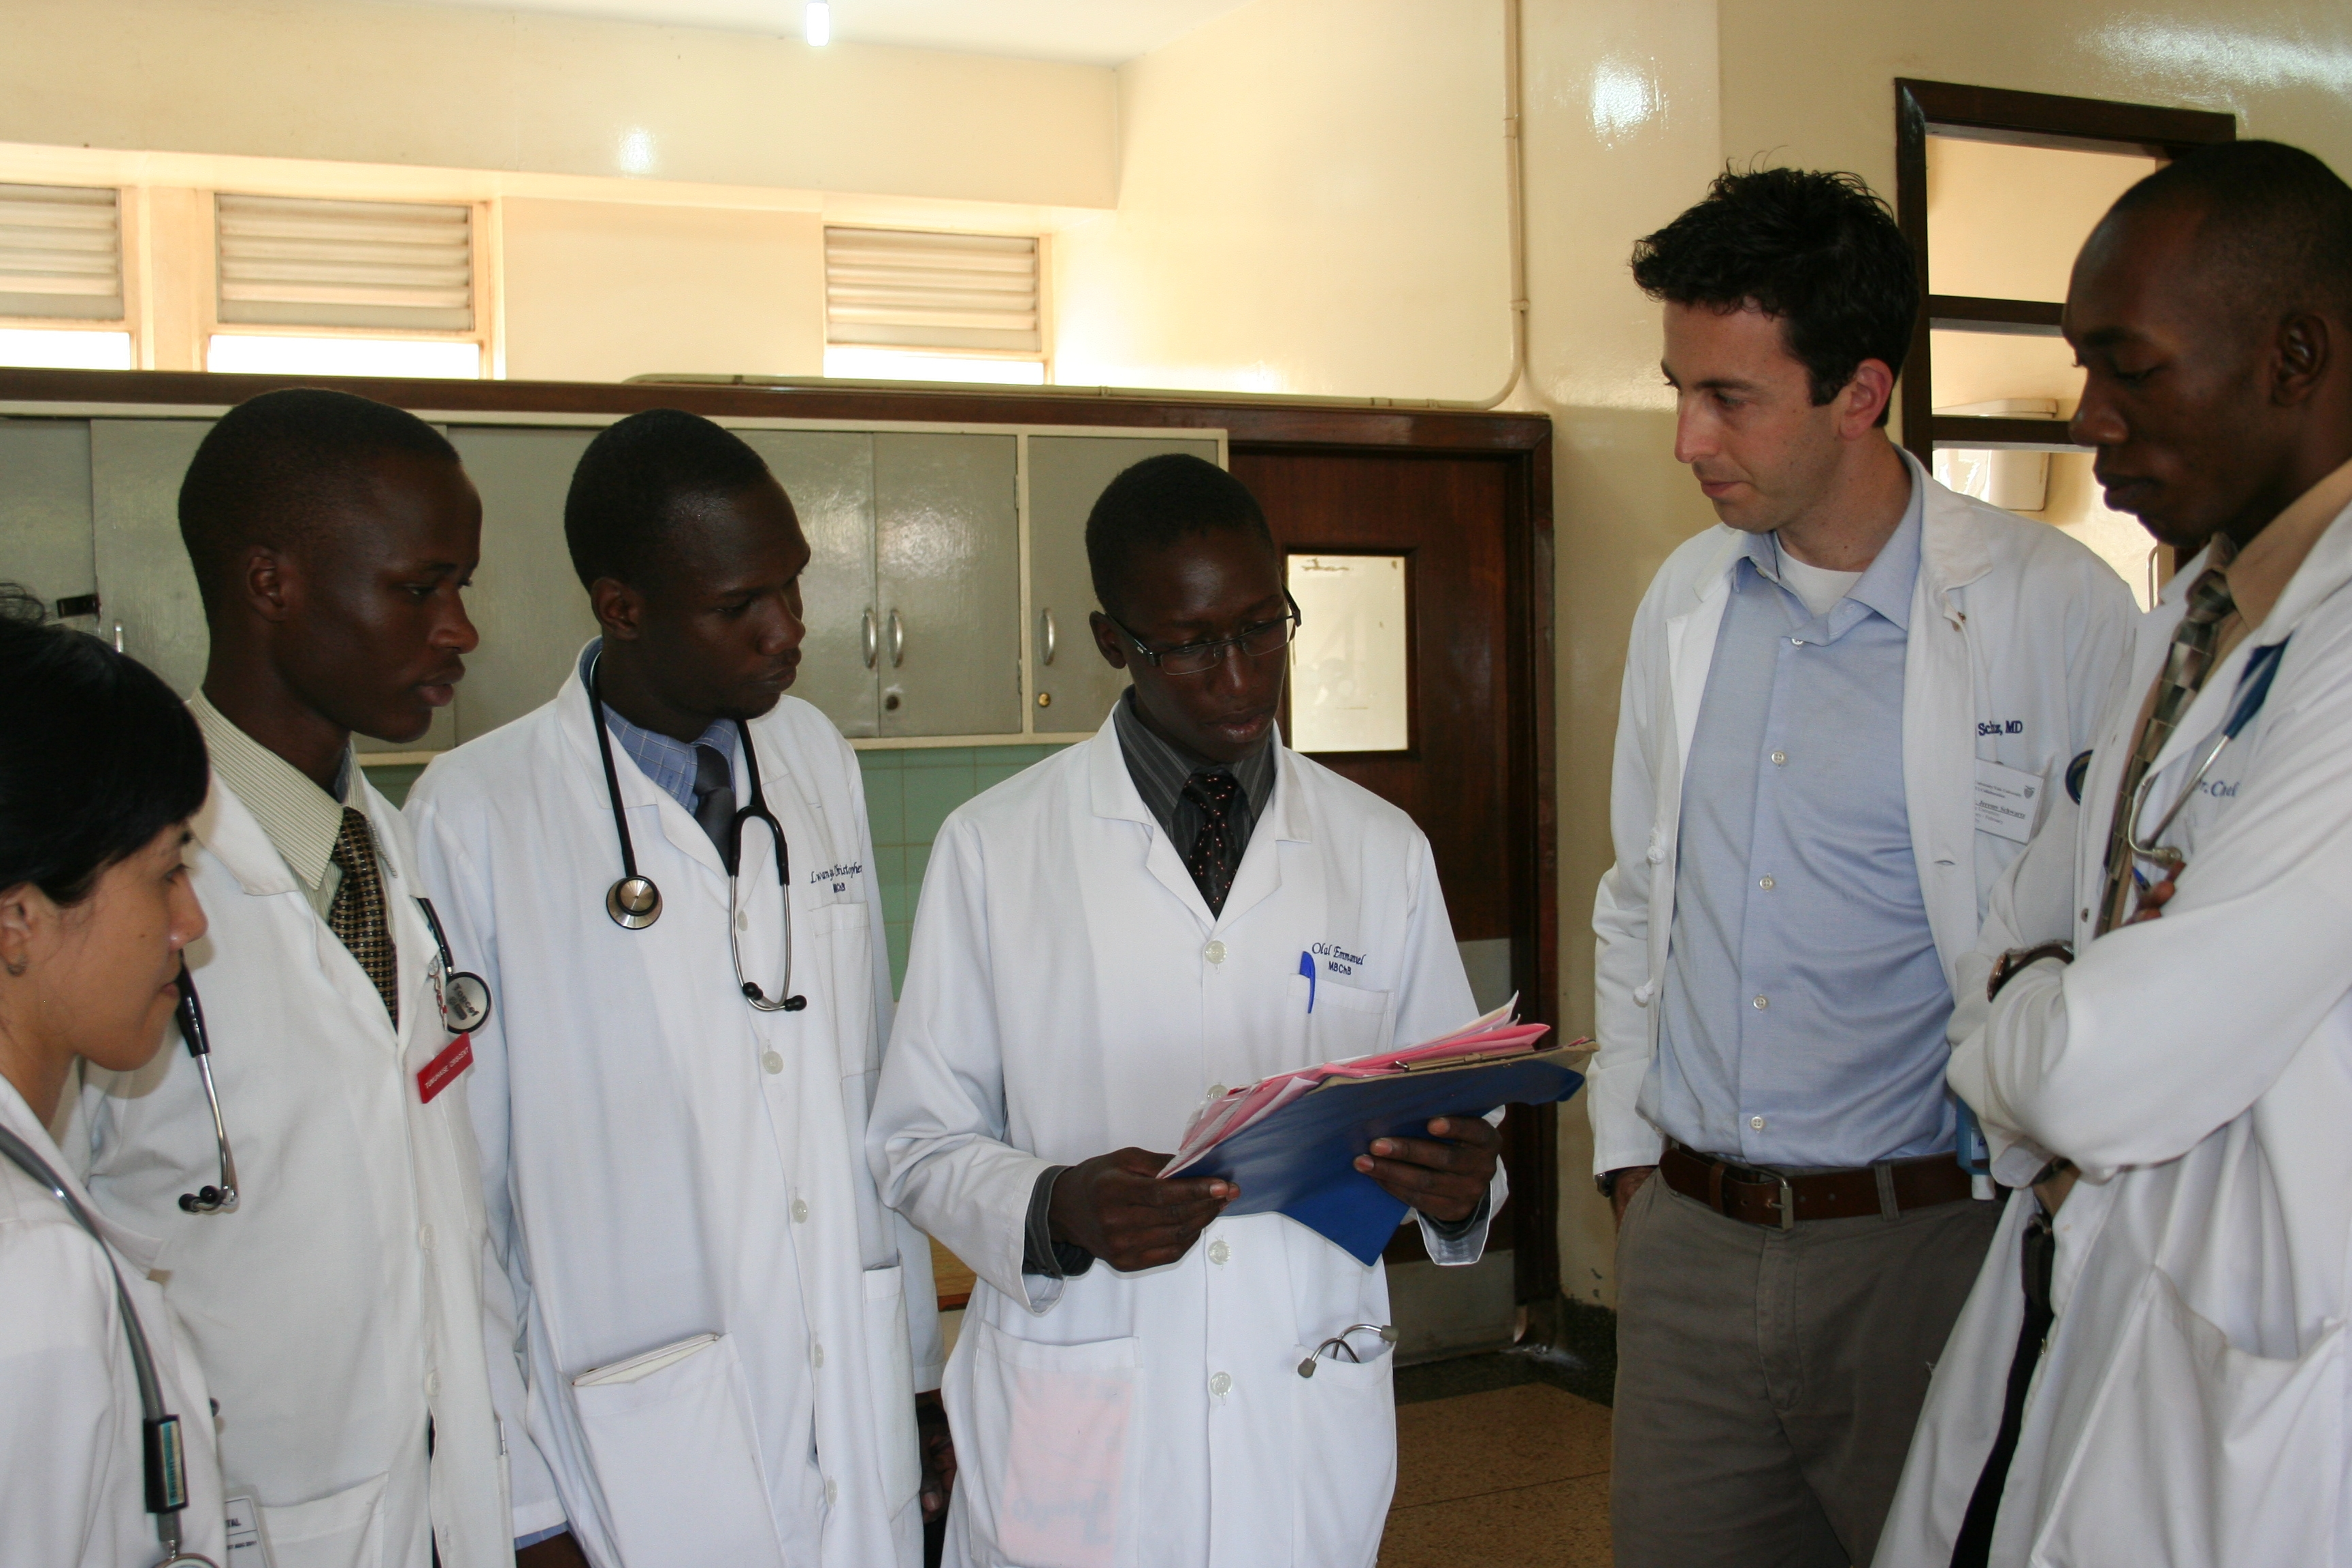 Dr. Jeremy Schwartz Speaks About His First Experience in Africa